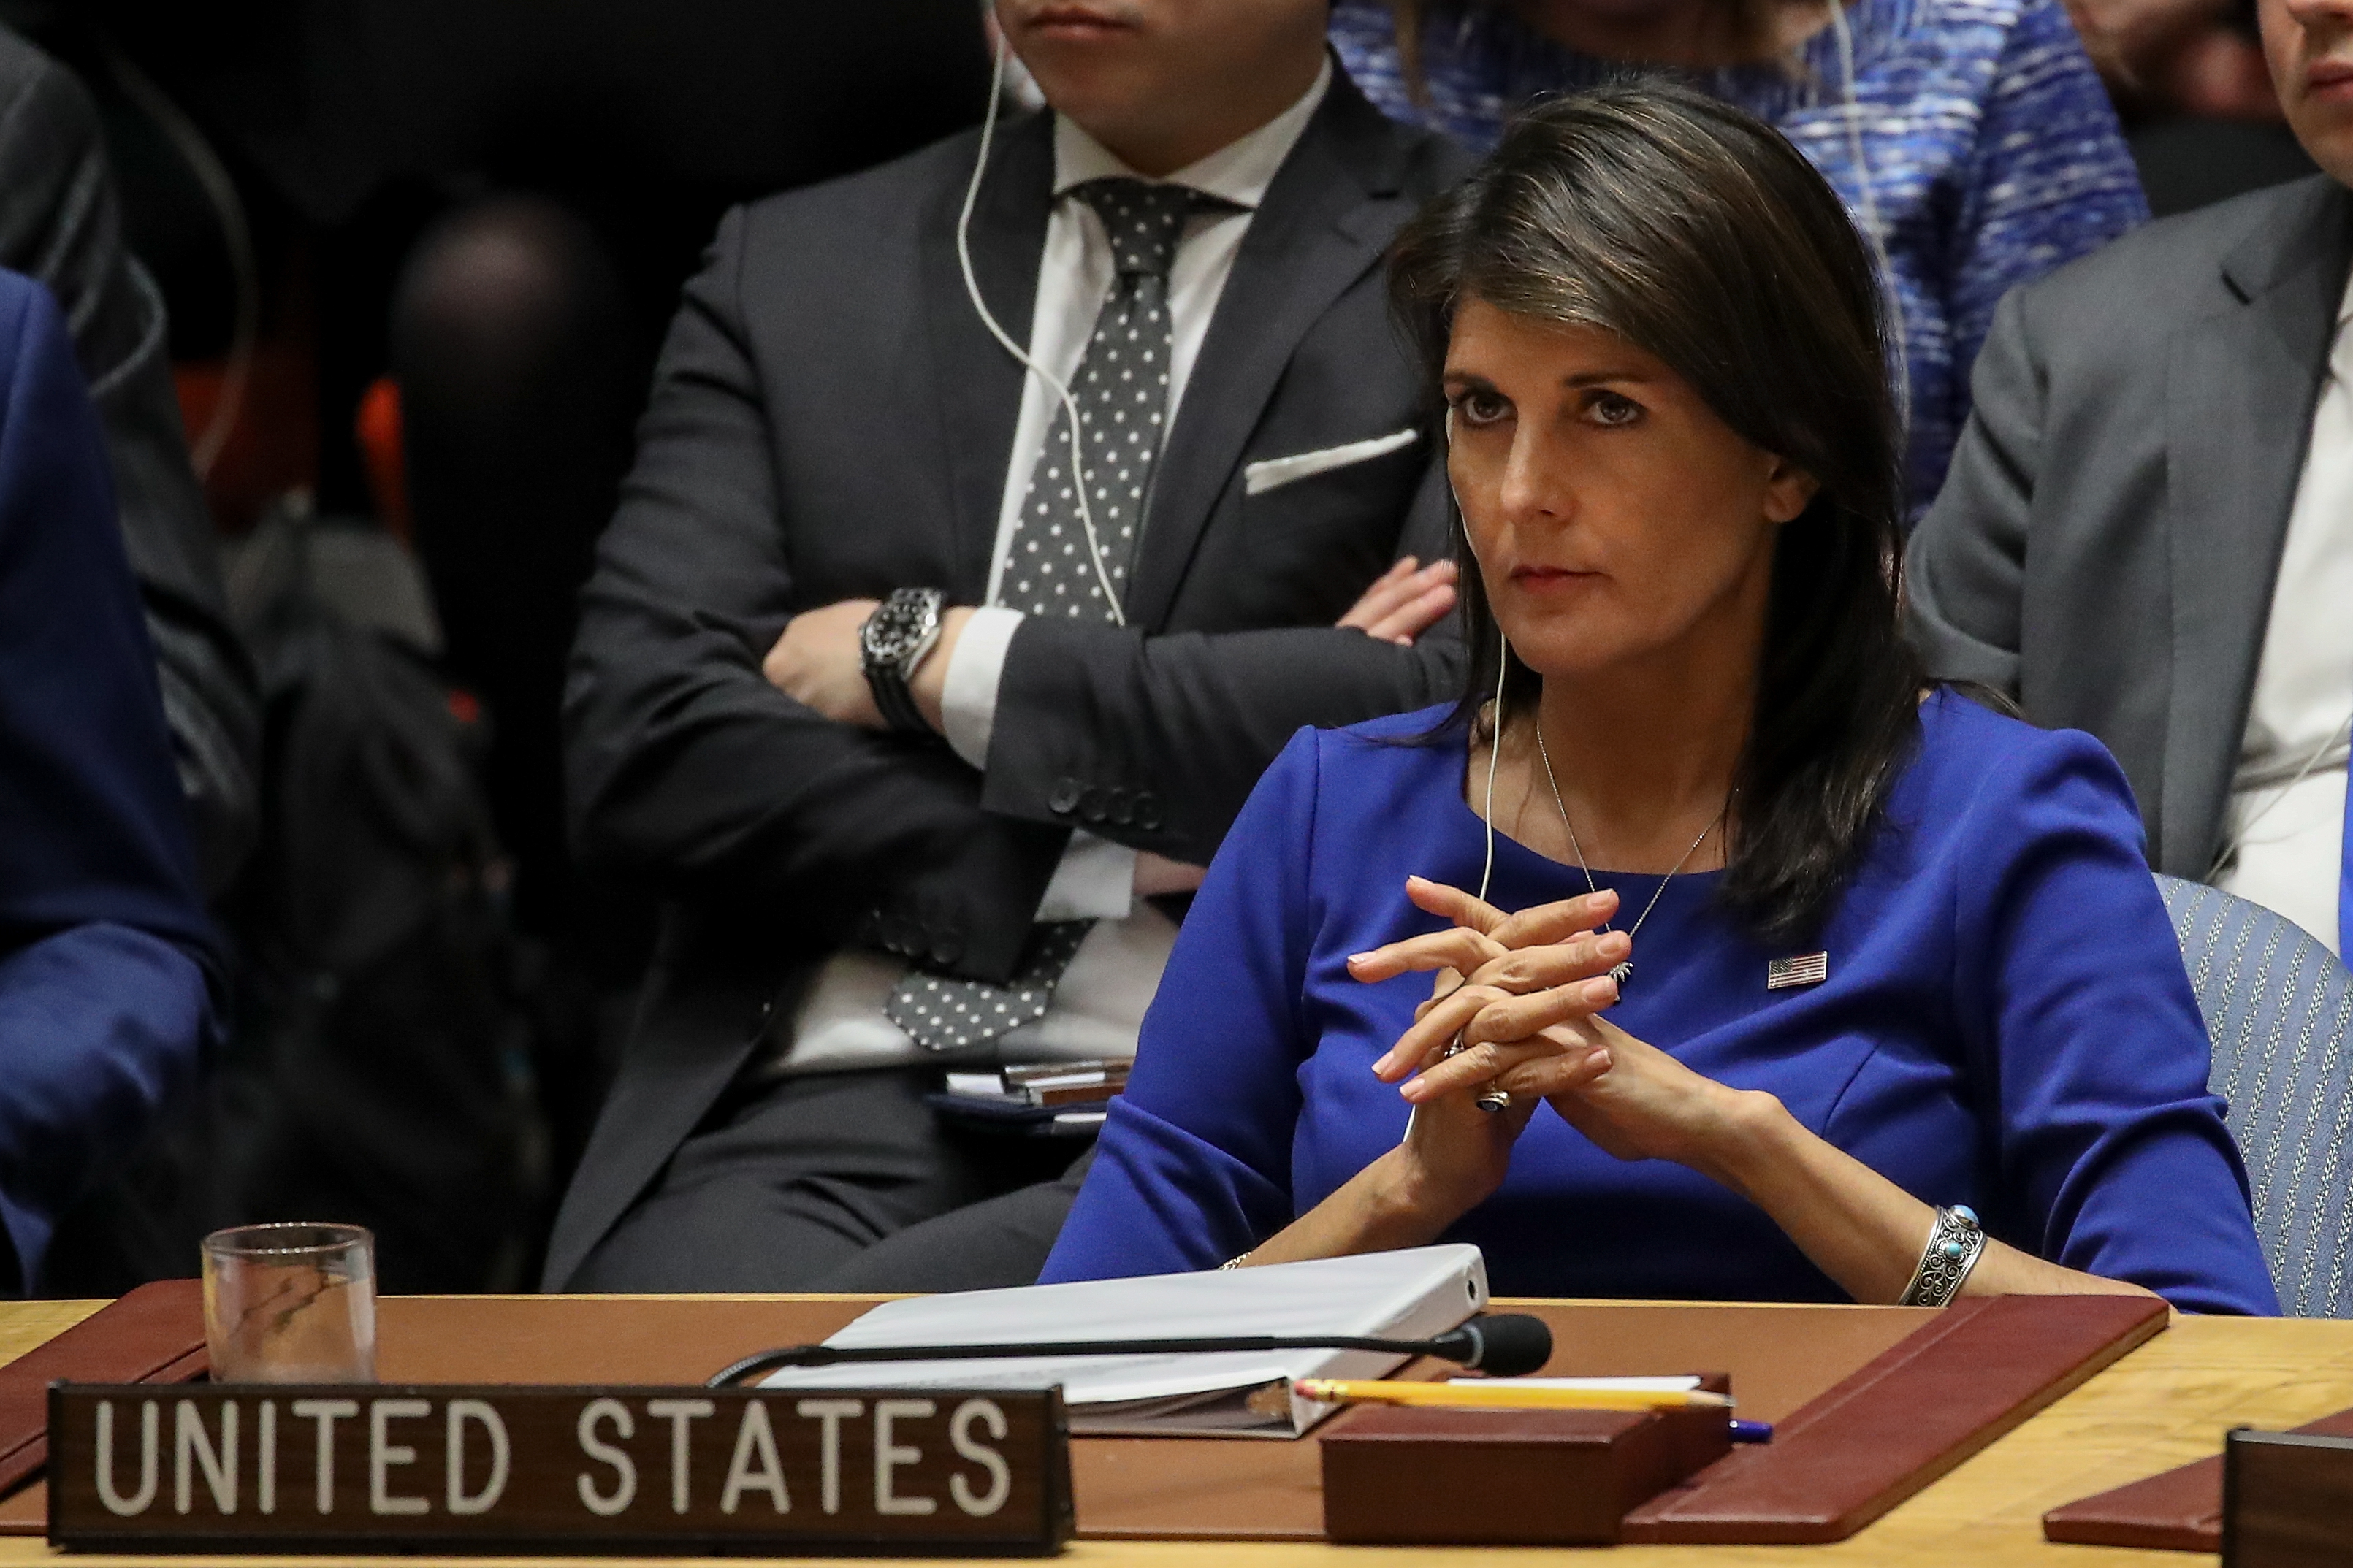 United States Ambassador to the United Nations Nikki Haley listens during a United Nations Security Council emergency meeting concerning the situation in Syria, at United Nations headquarters on April 14, 2018 in New York City.